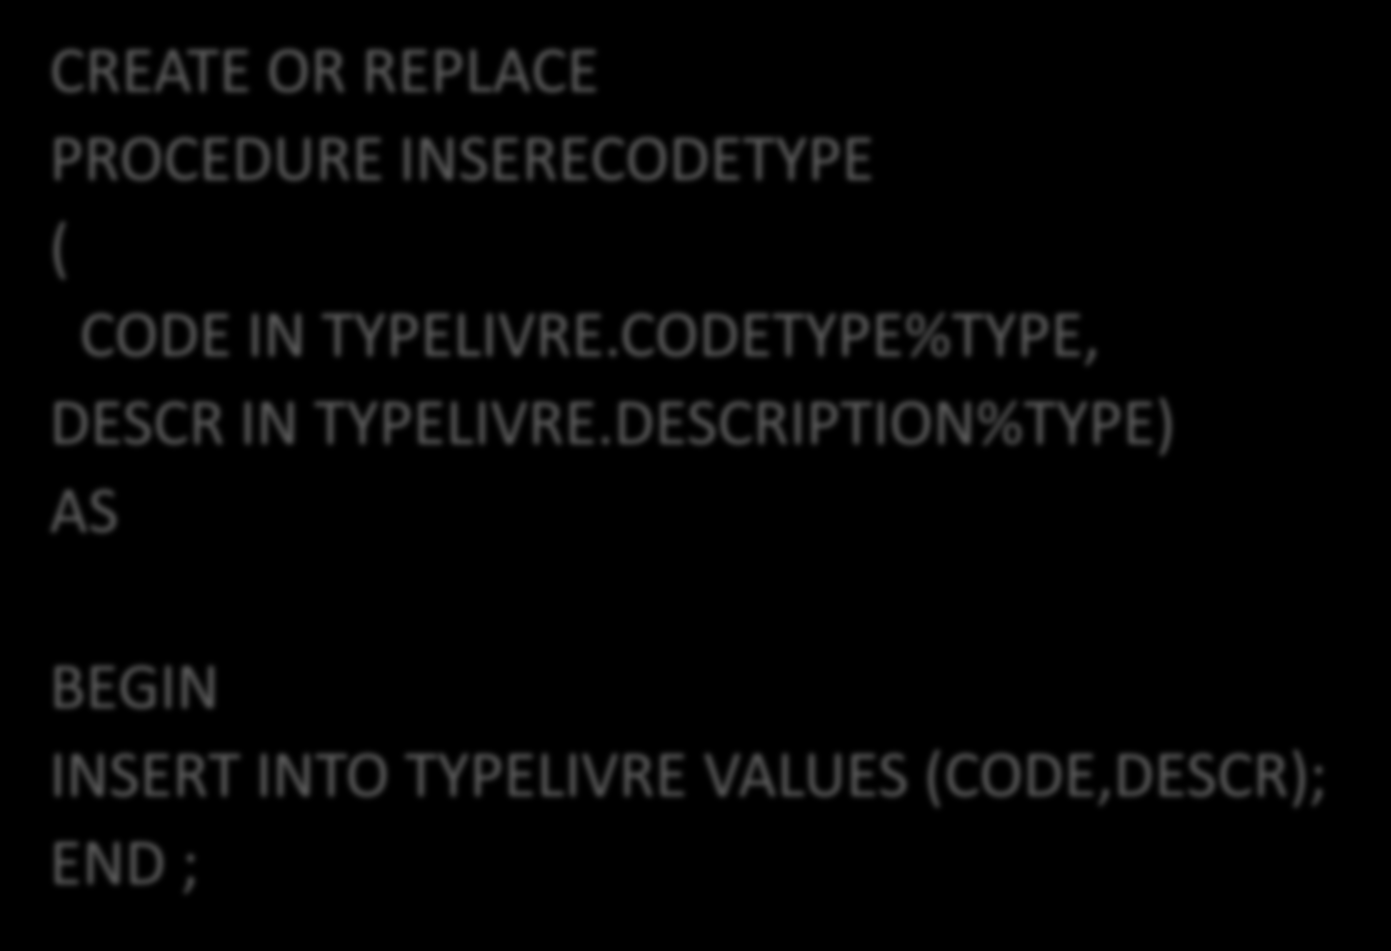 Réponse CREATE OR REPLACE PROCEDURE INSERECODETYPE ( CODE IN TYPELIVRE.